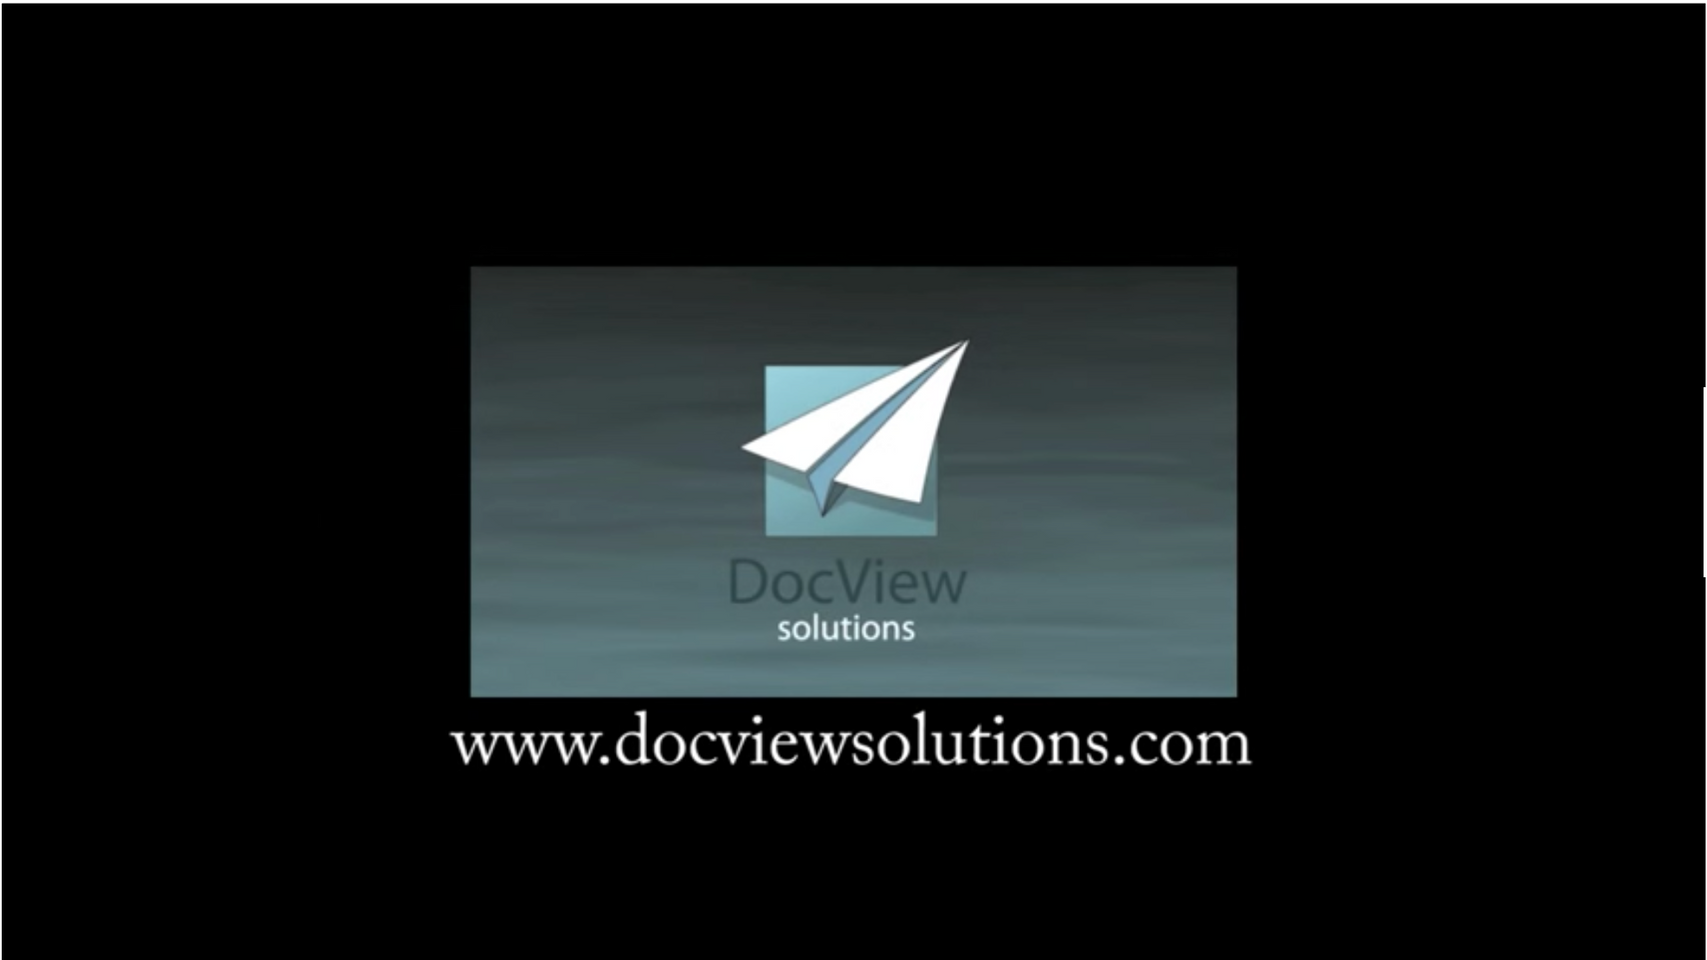 DocView mHealth